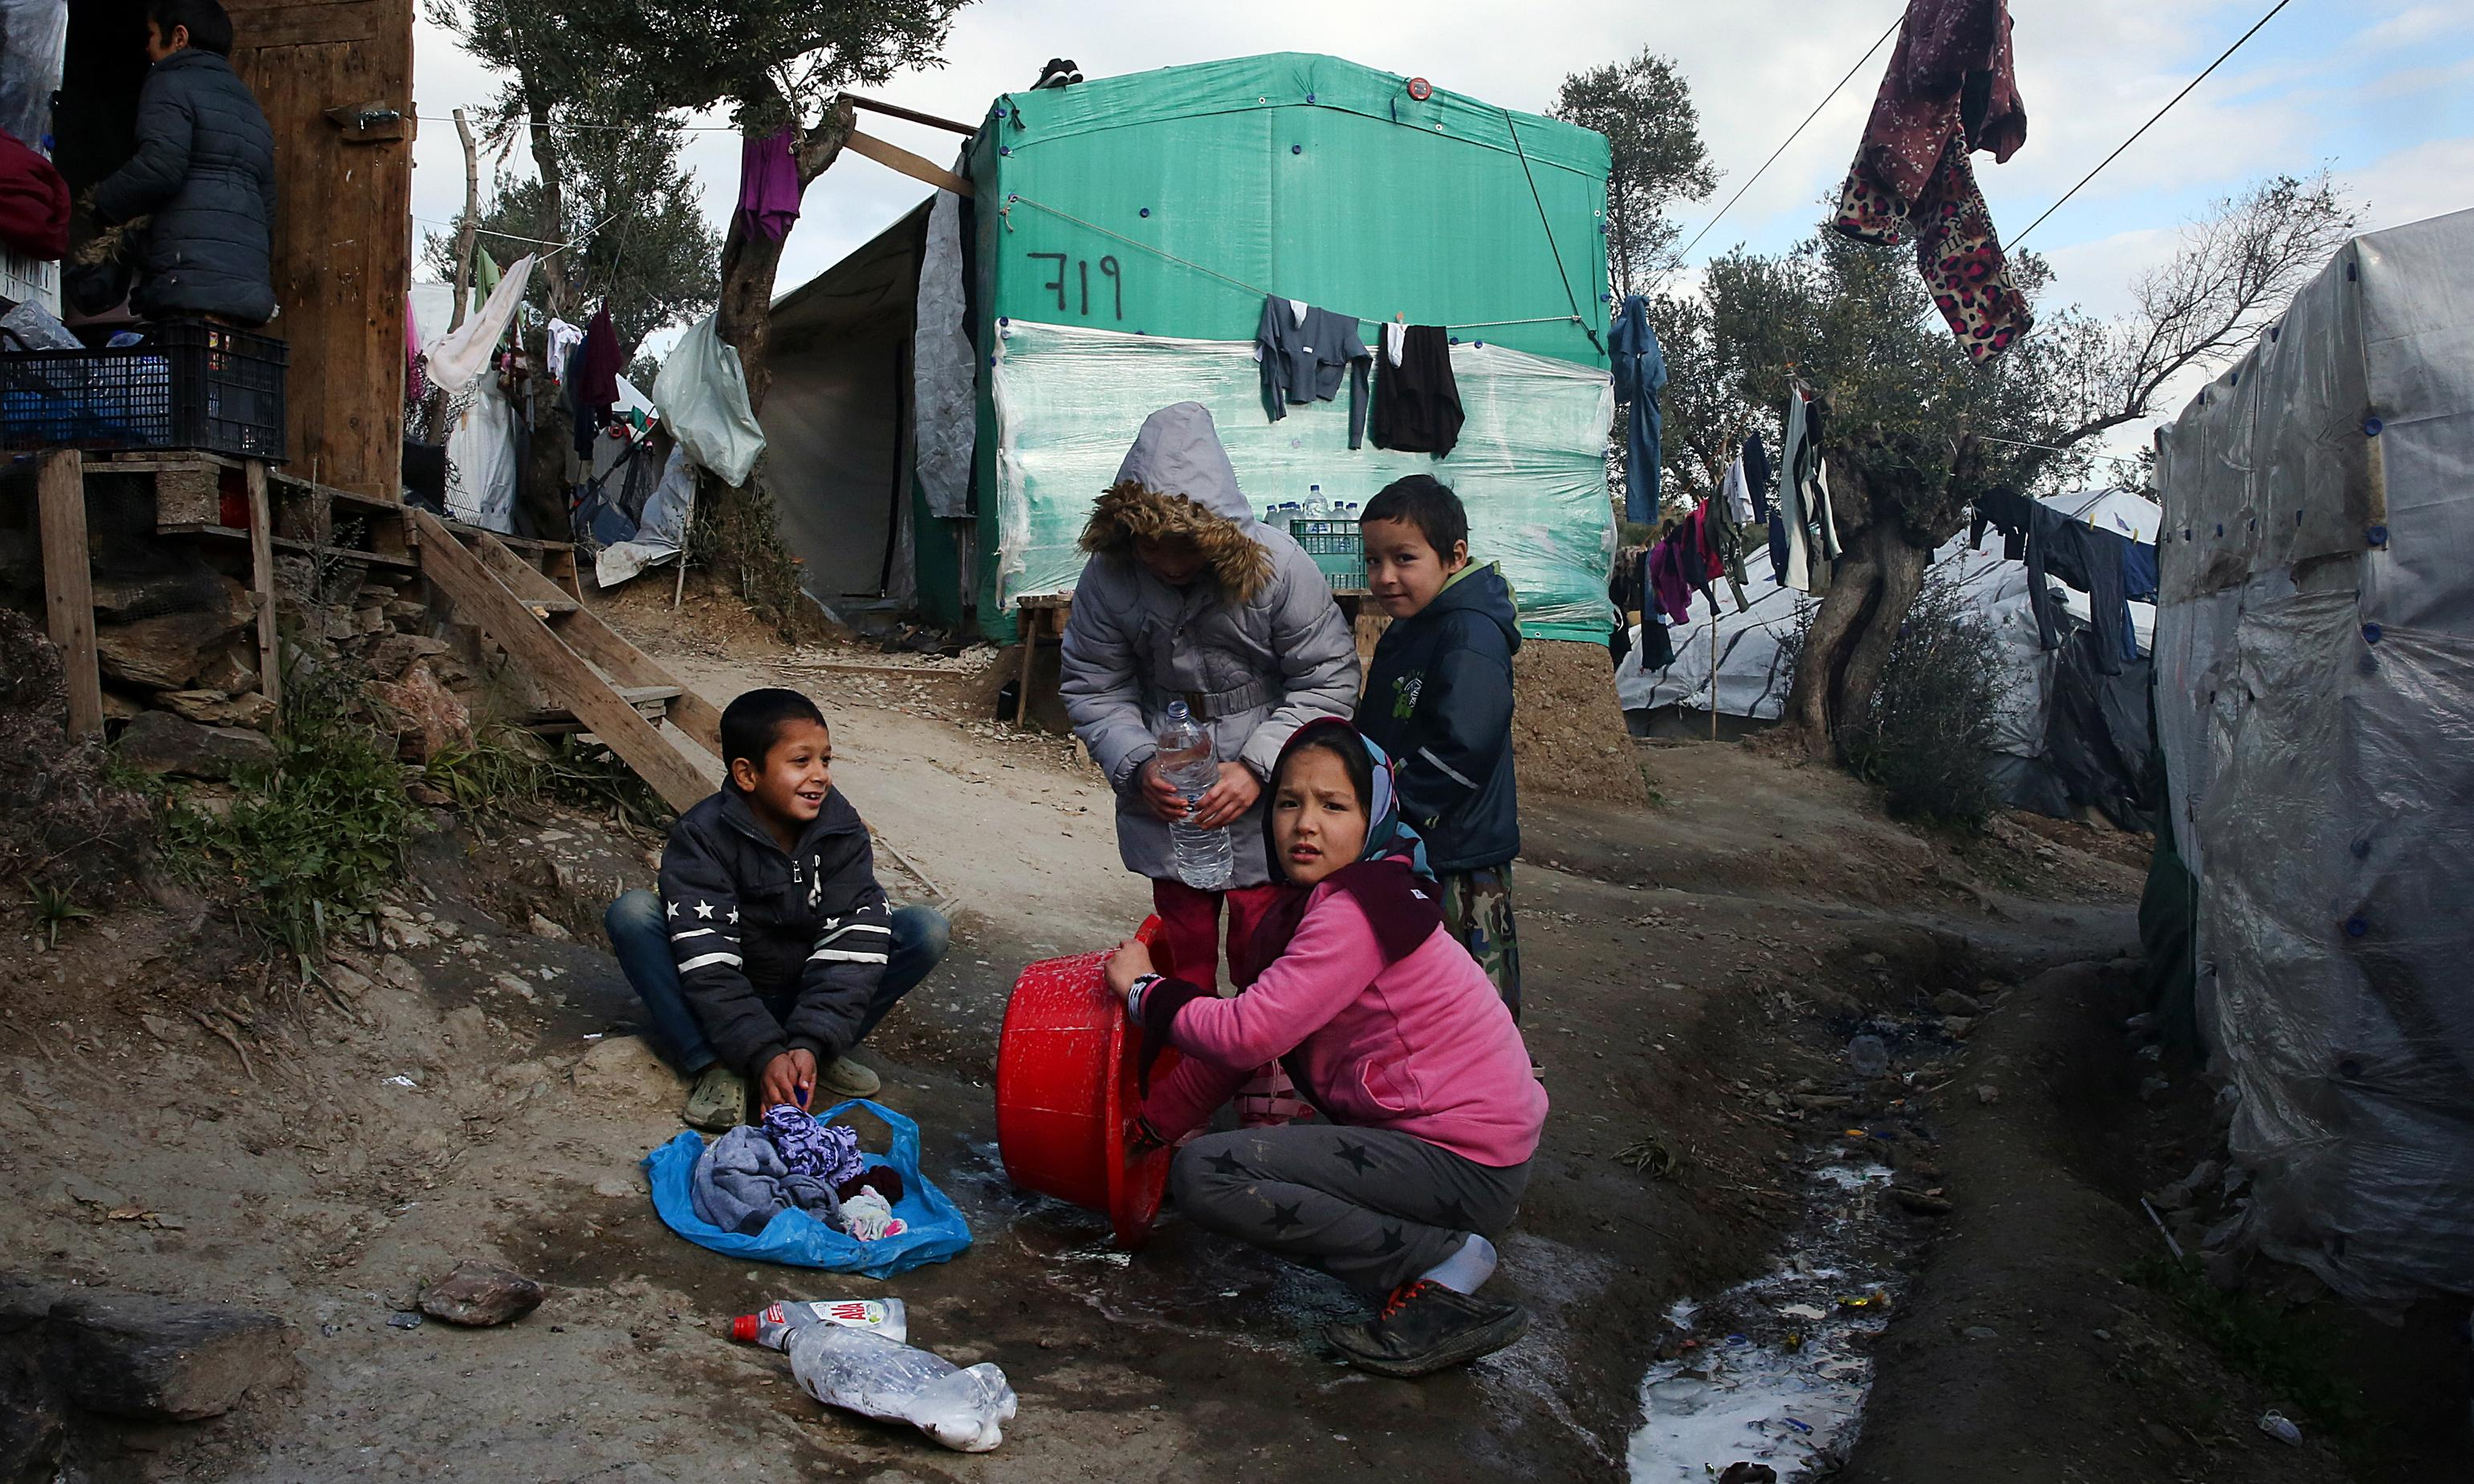 Trapped on Lesbos: the child refugees waiting to start a new life